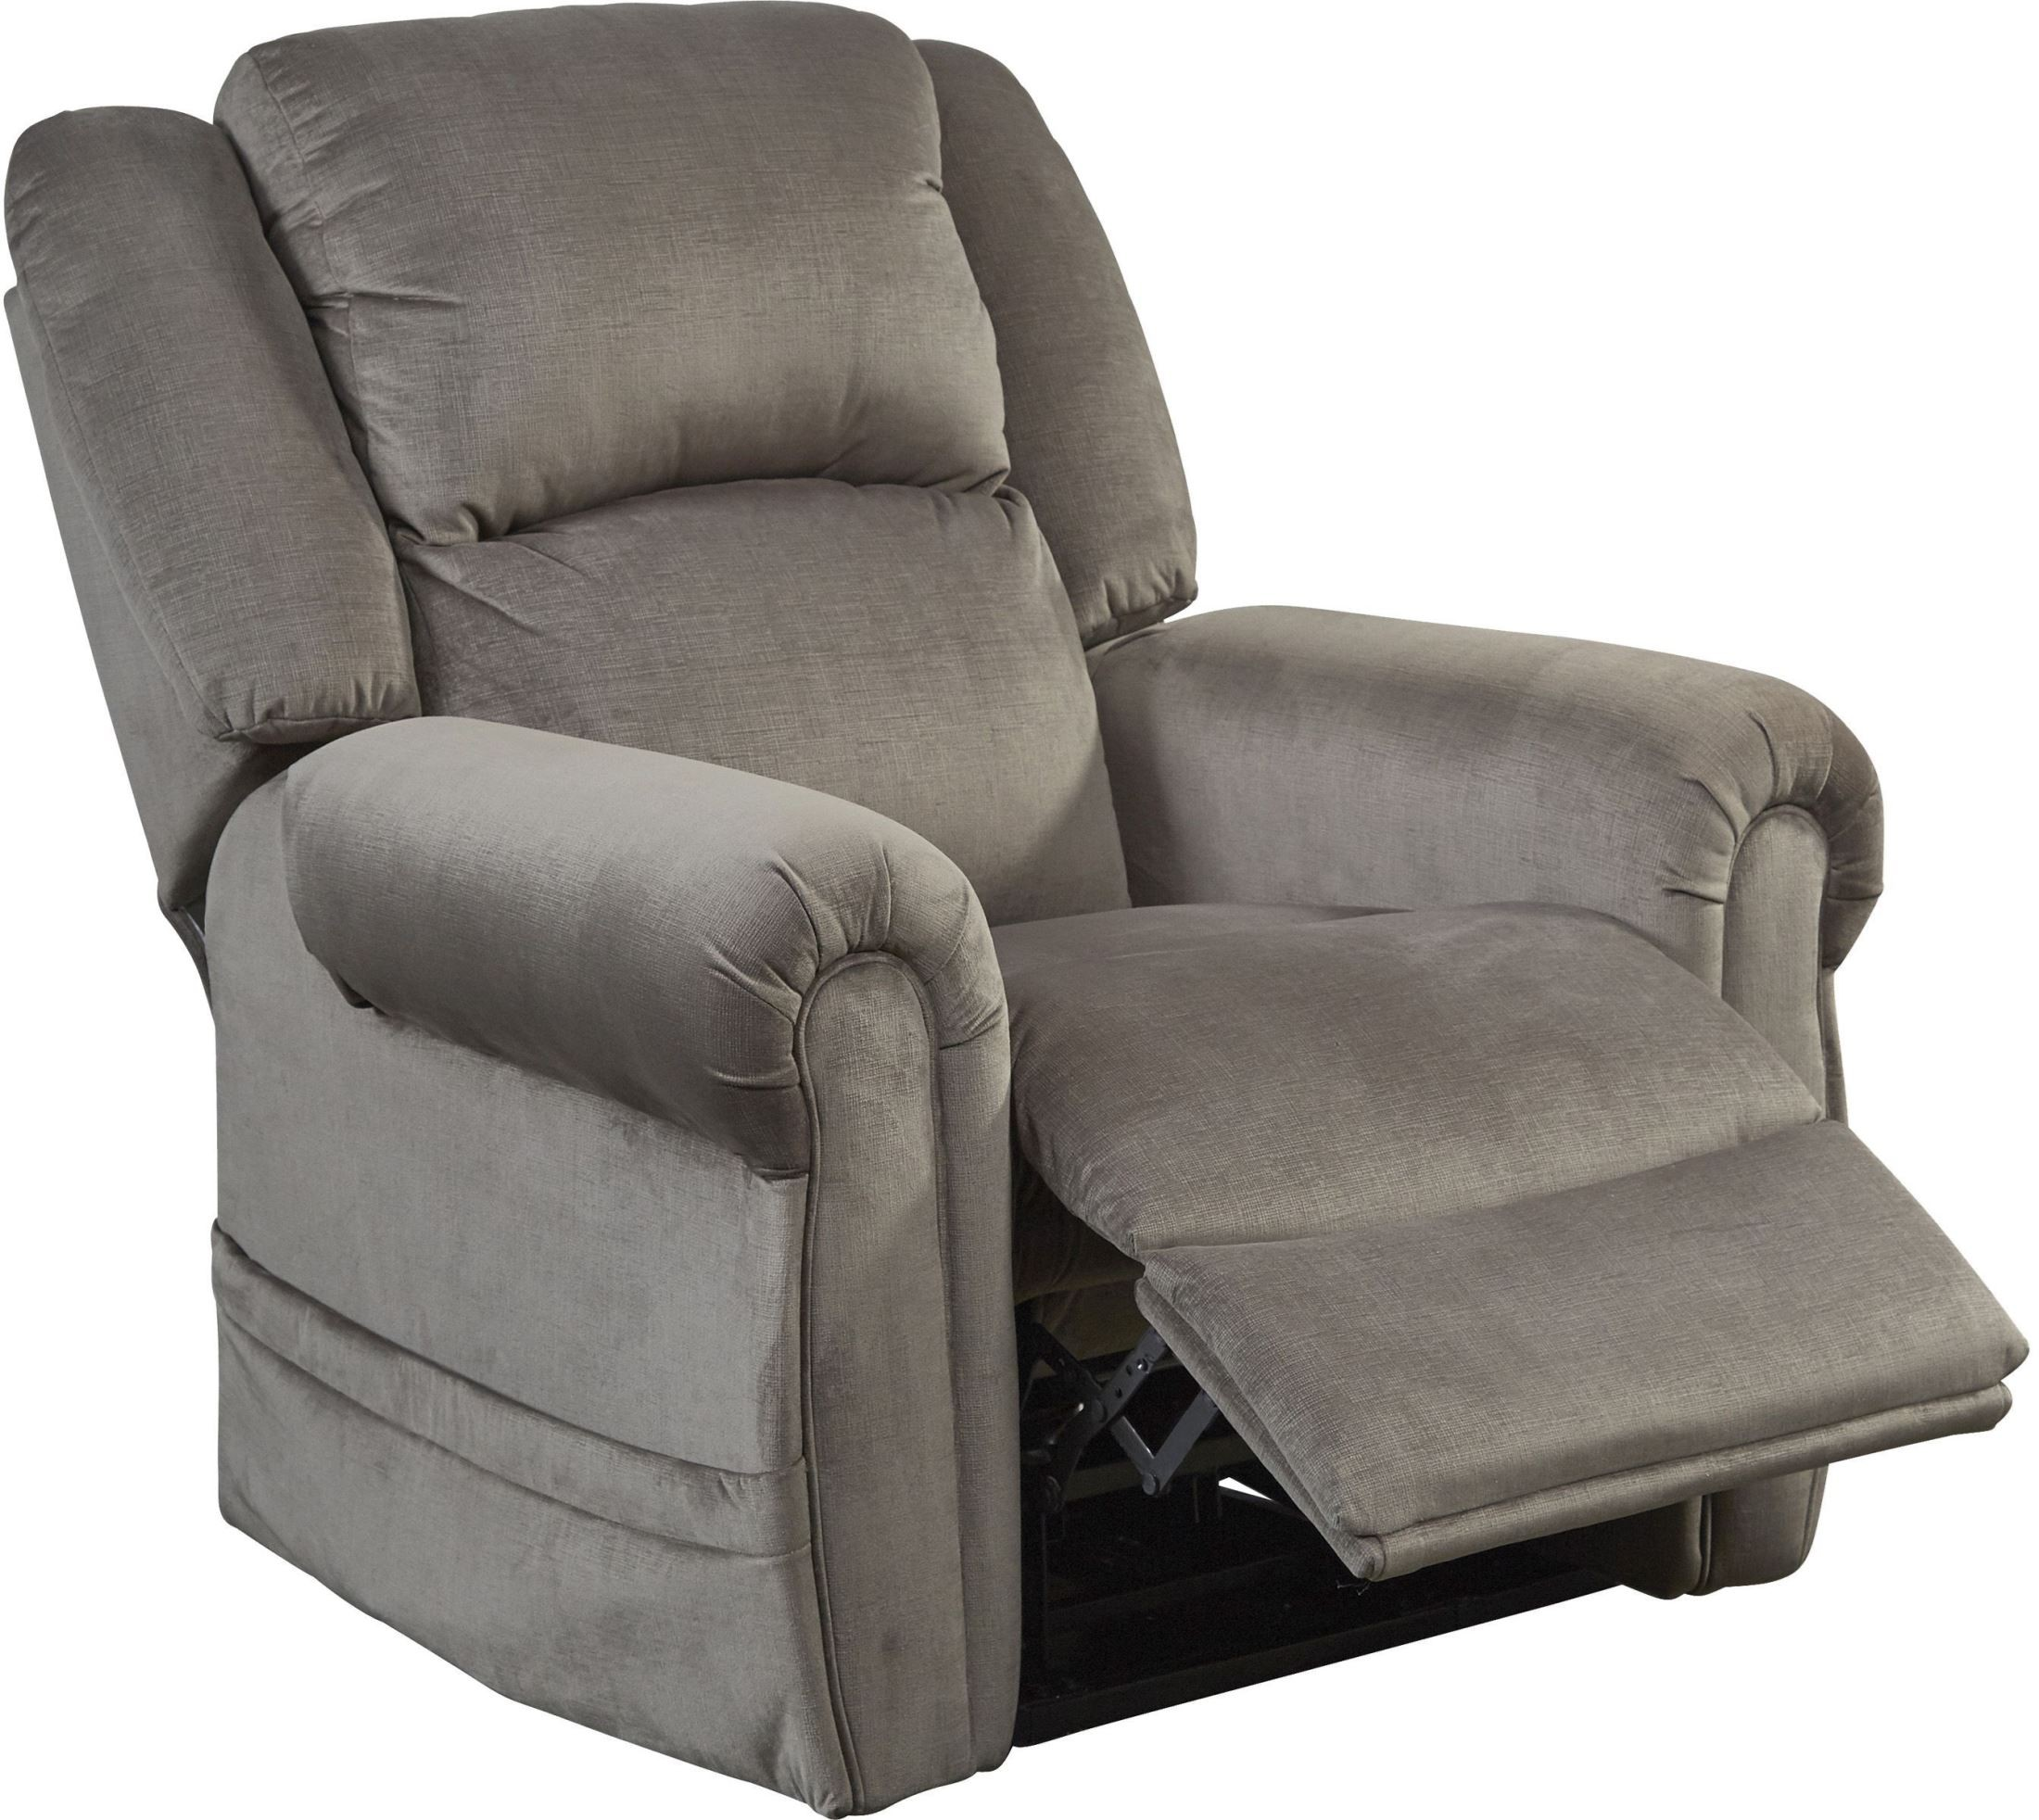 lay flat recliner chairs outdoor recliners spencer pewter power lift from catnapper